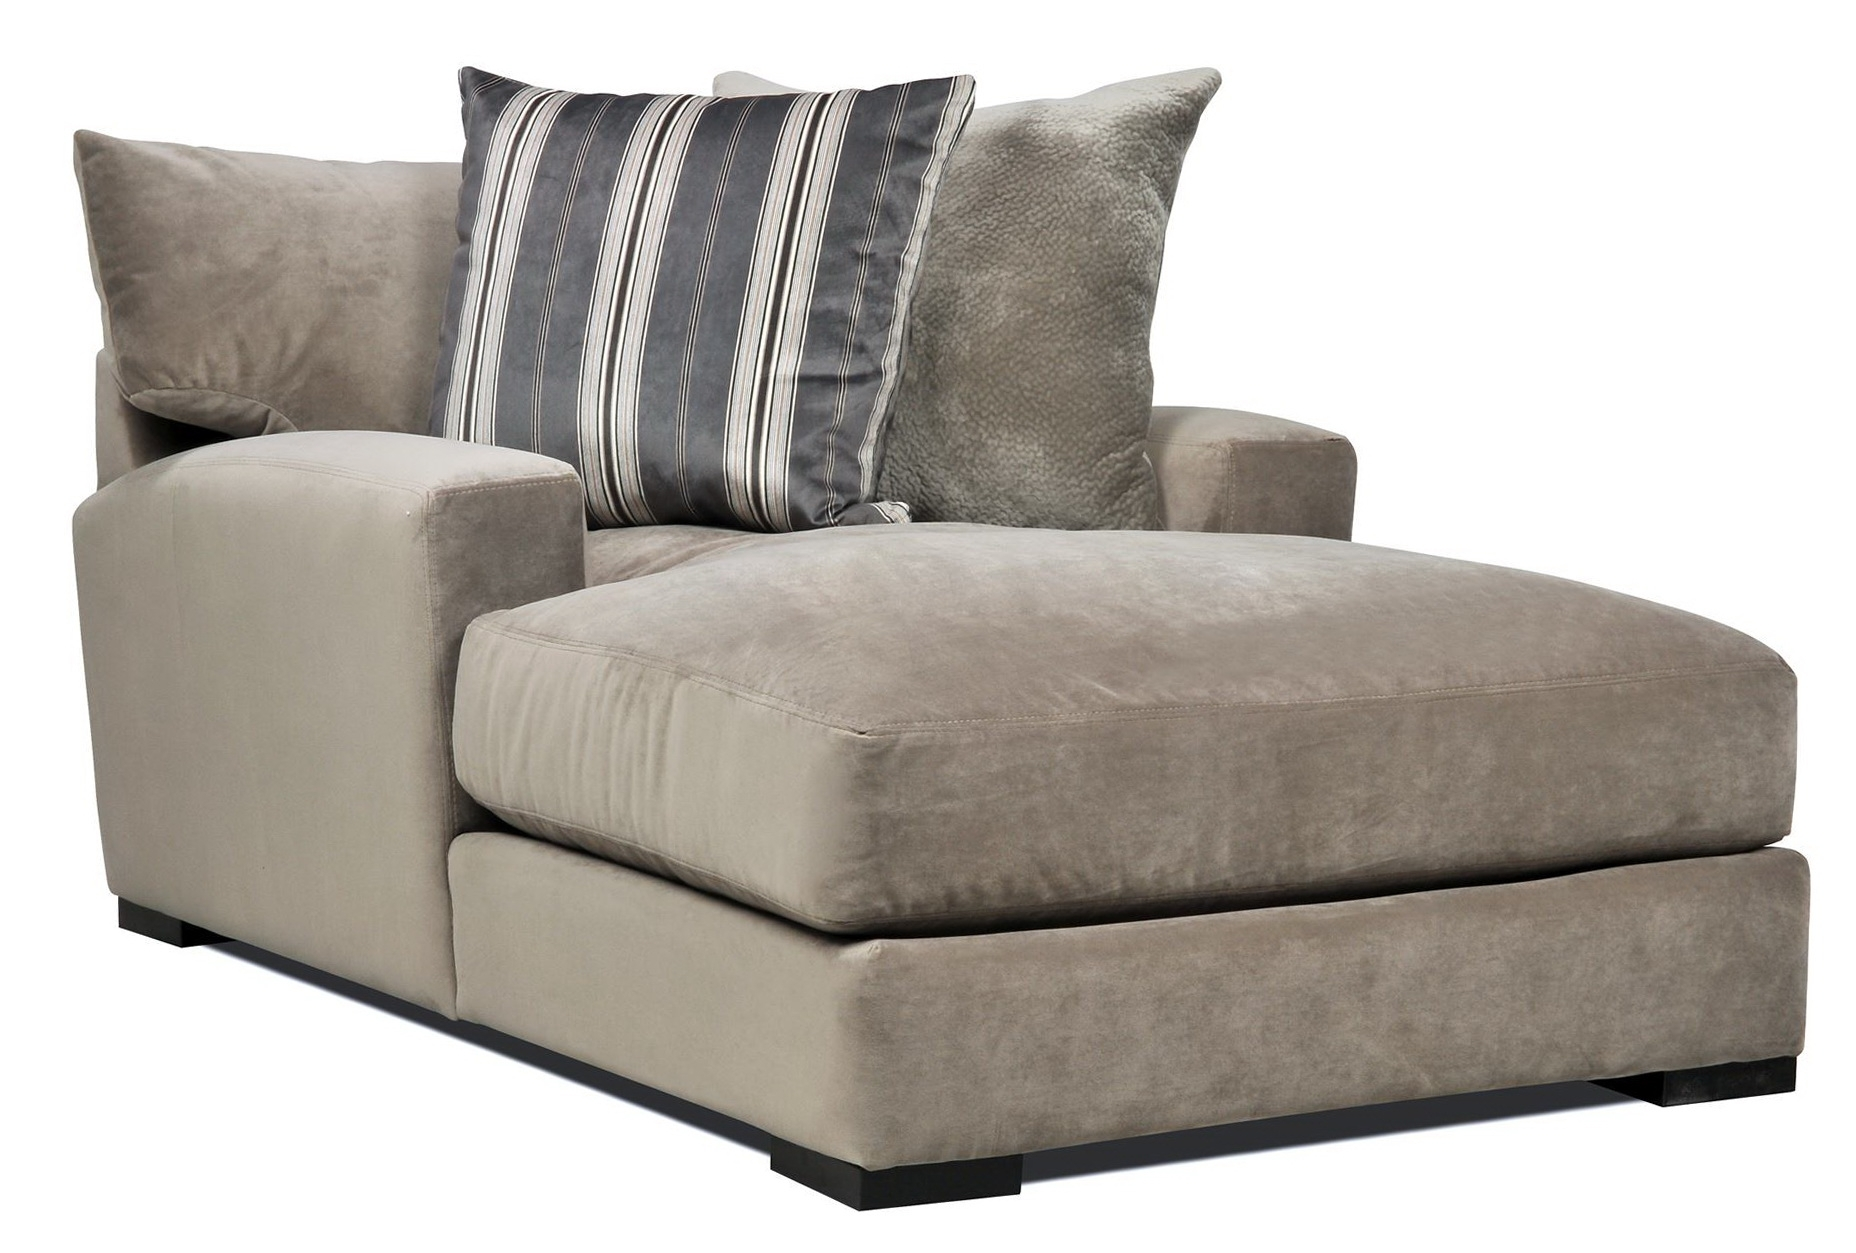 2017 Interior: Alluring Furniture Chaise Lounge Indoor For Living Room Intended For Cheap Chaise Lounges (View 1 of 15)